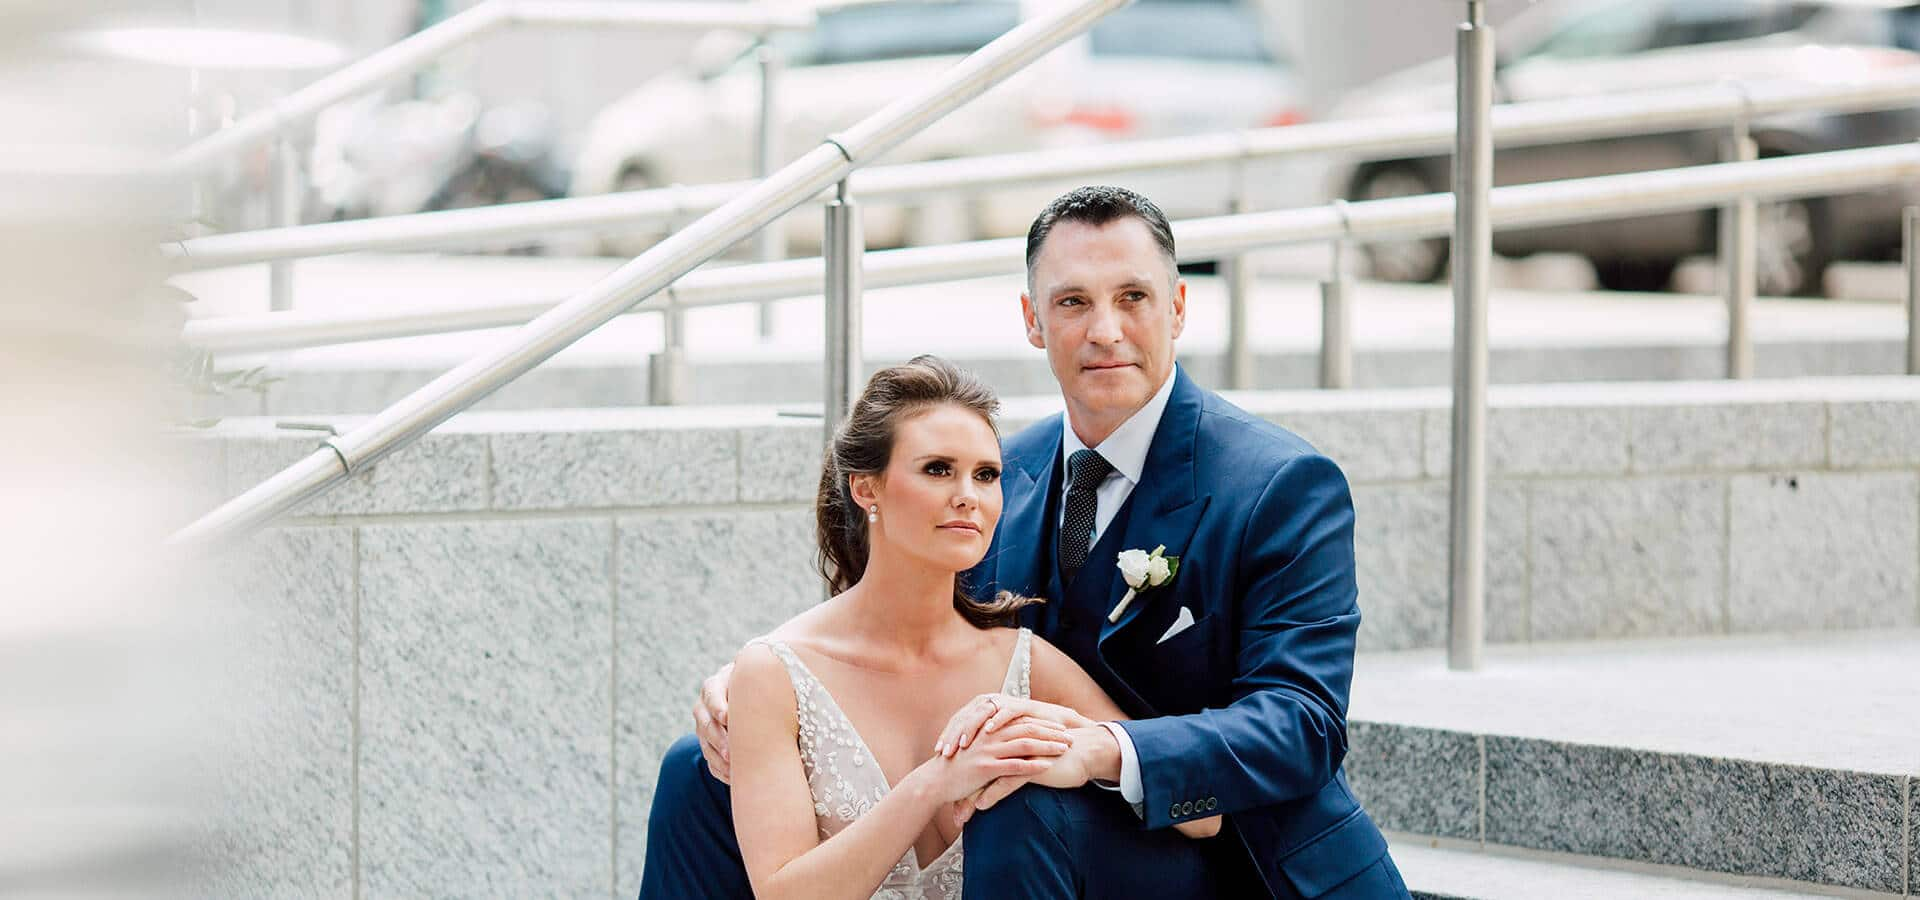 Hero image for Stephanie & Timothy's Modern Geometric Wedding at The Chase